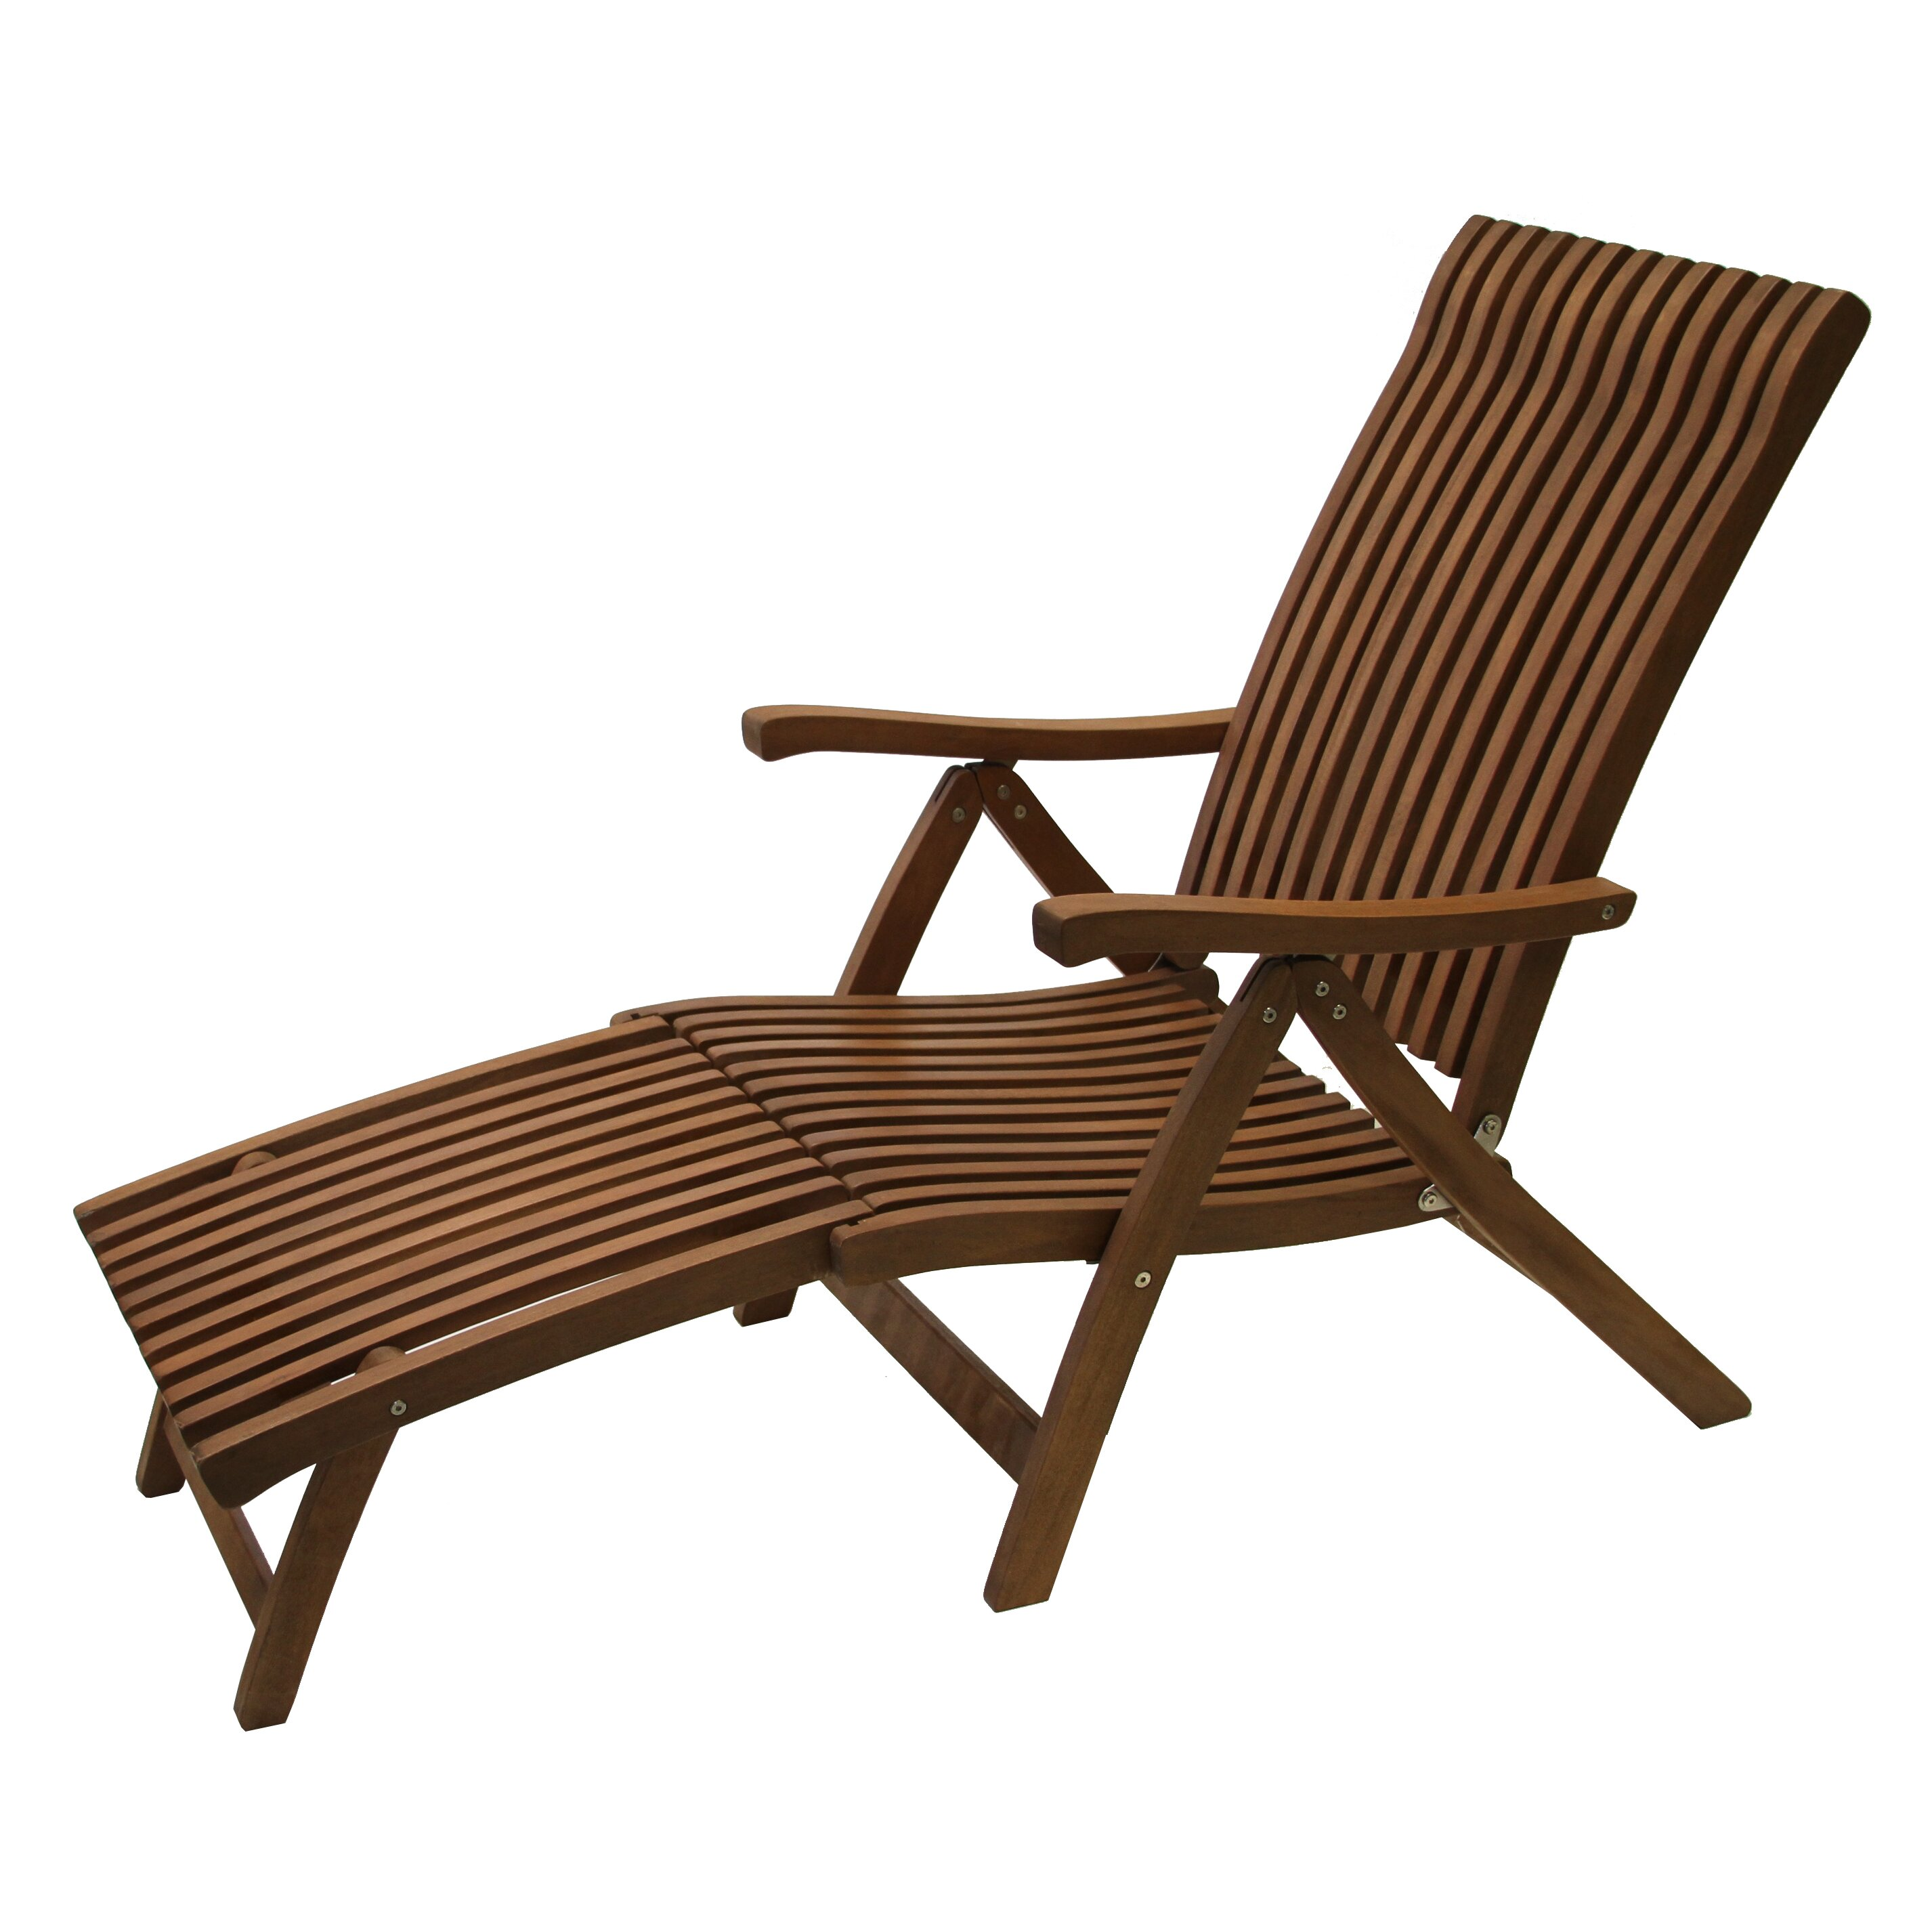 Outdoor interiors eucalyptus venetian 5 position lounger for Adams 5 position chaise lounge white